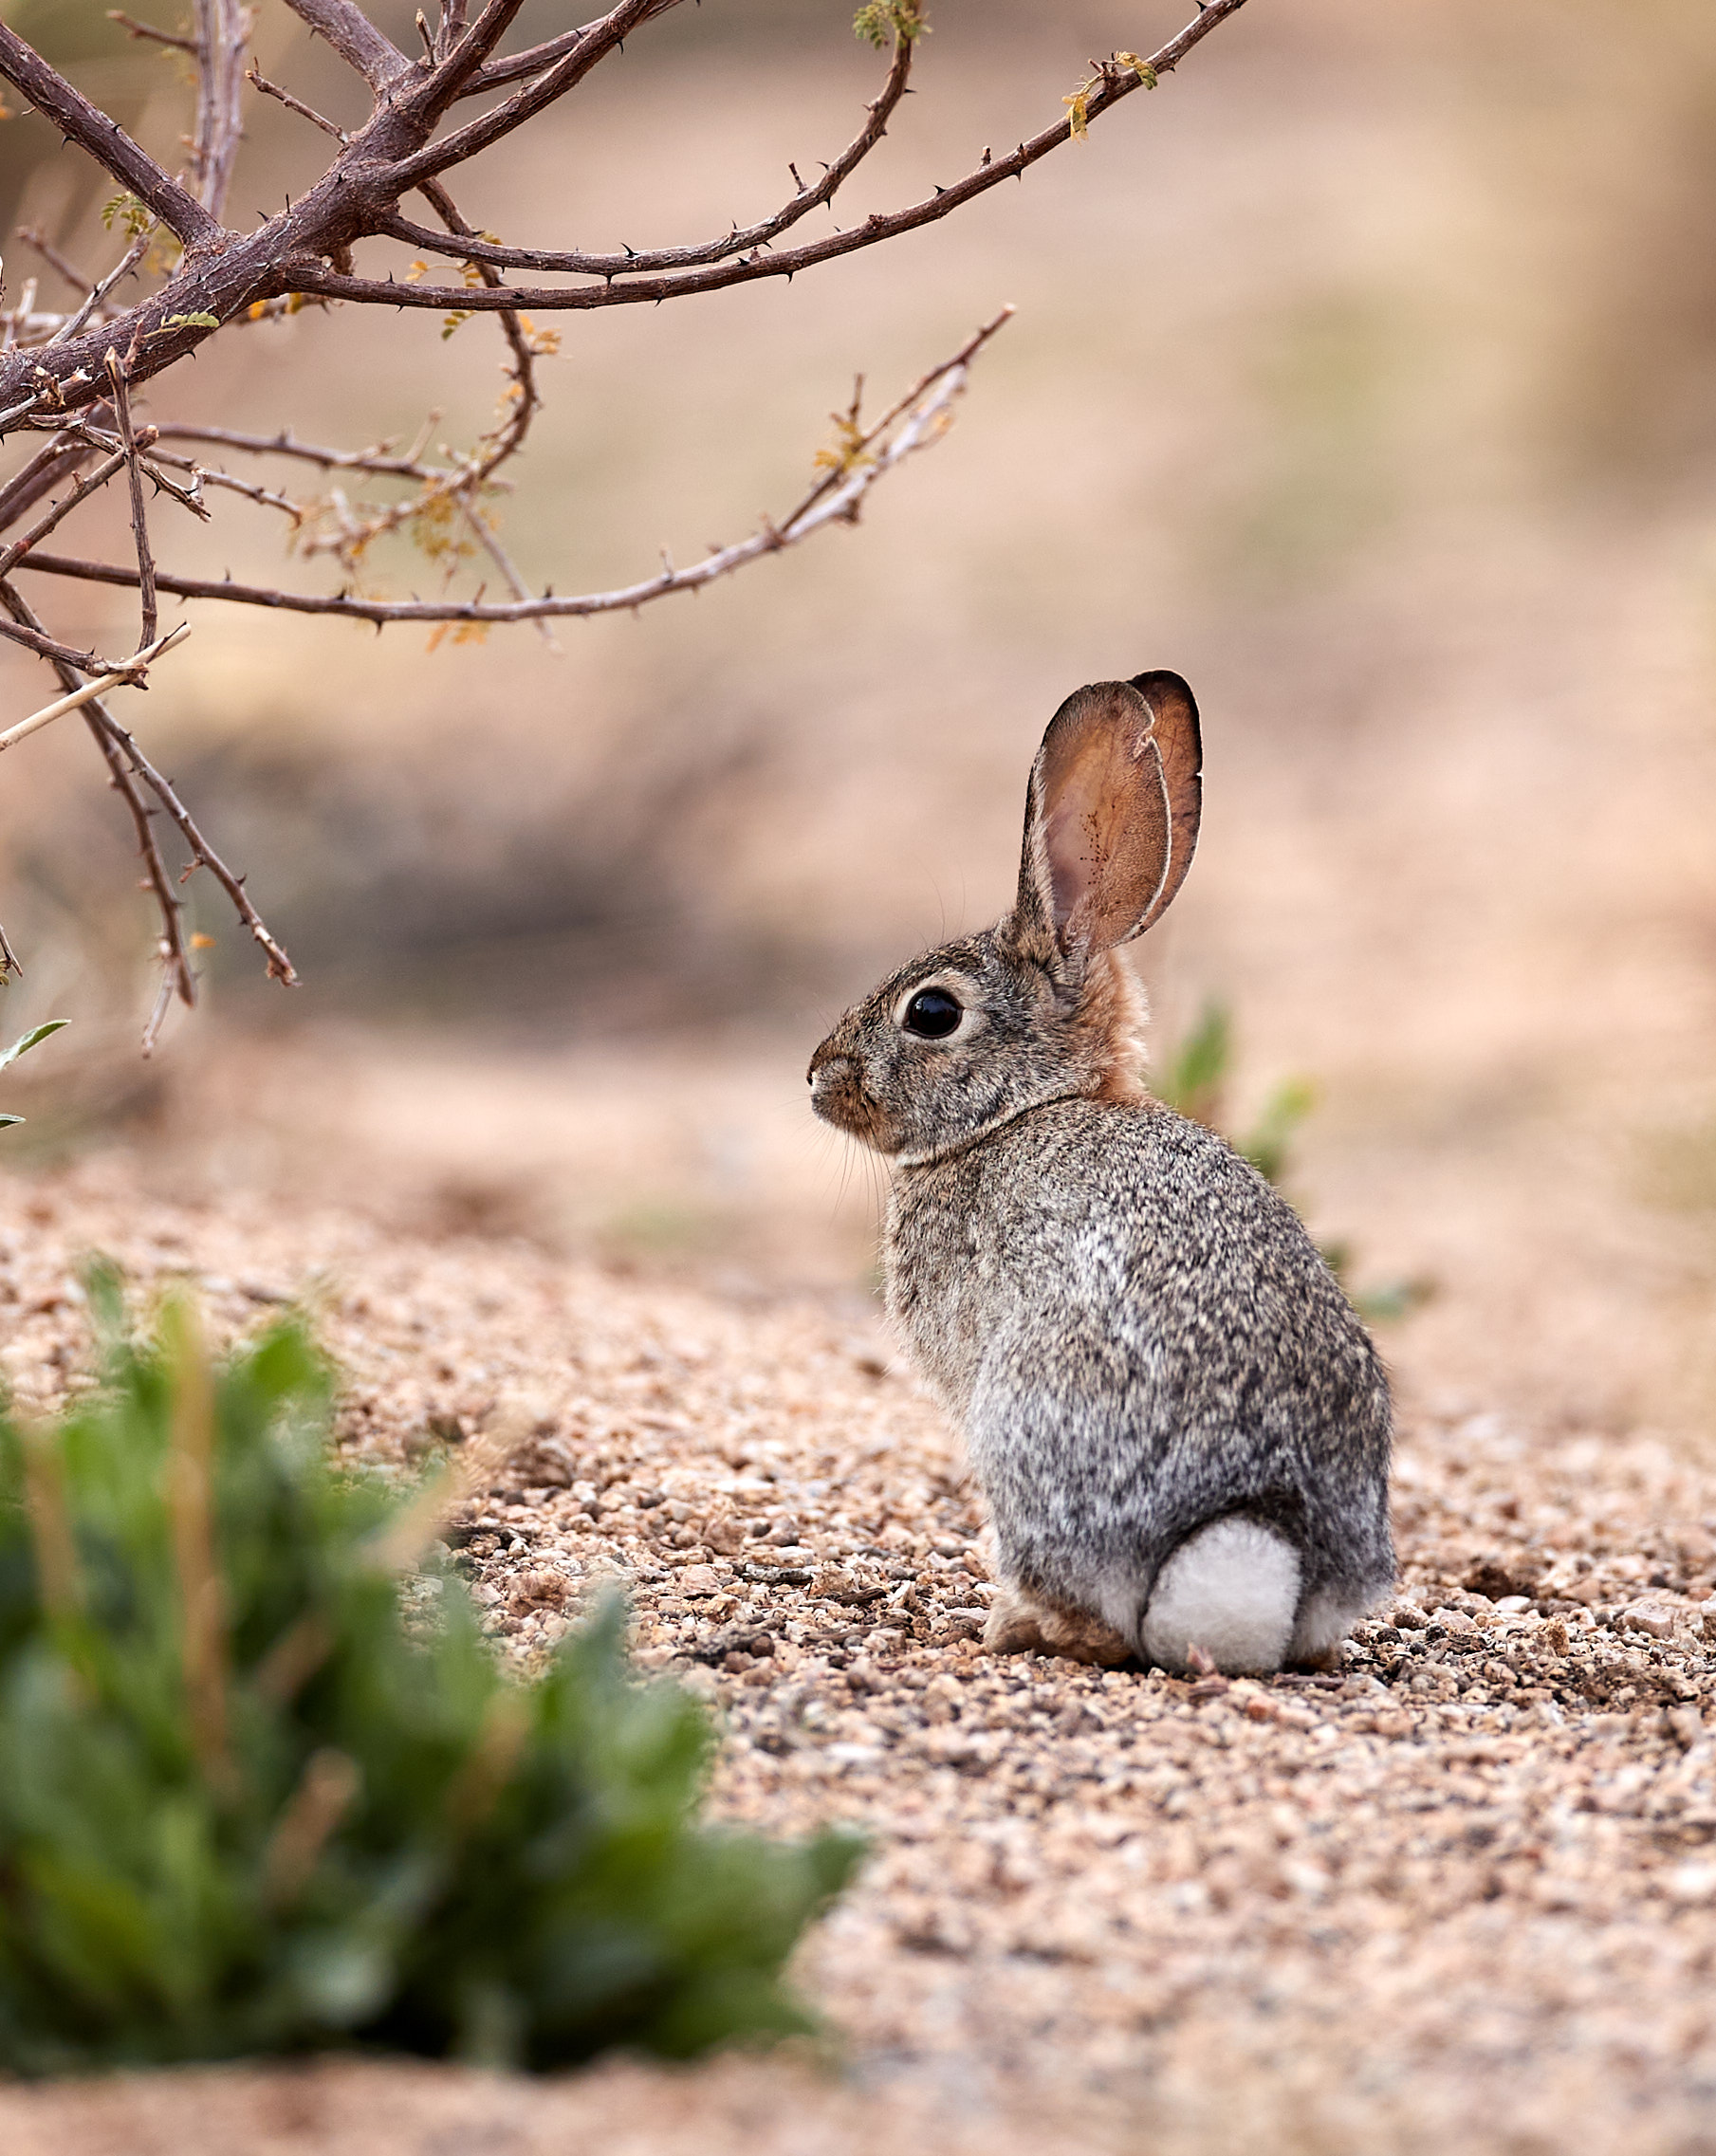 130232 download wallpaper Animals, Hare, Animal, Sight, Opinion, Wildlife screensavers and pictures for free